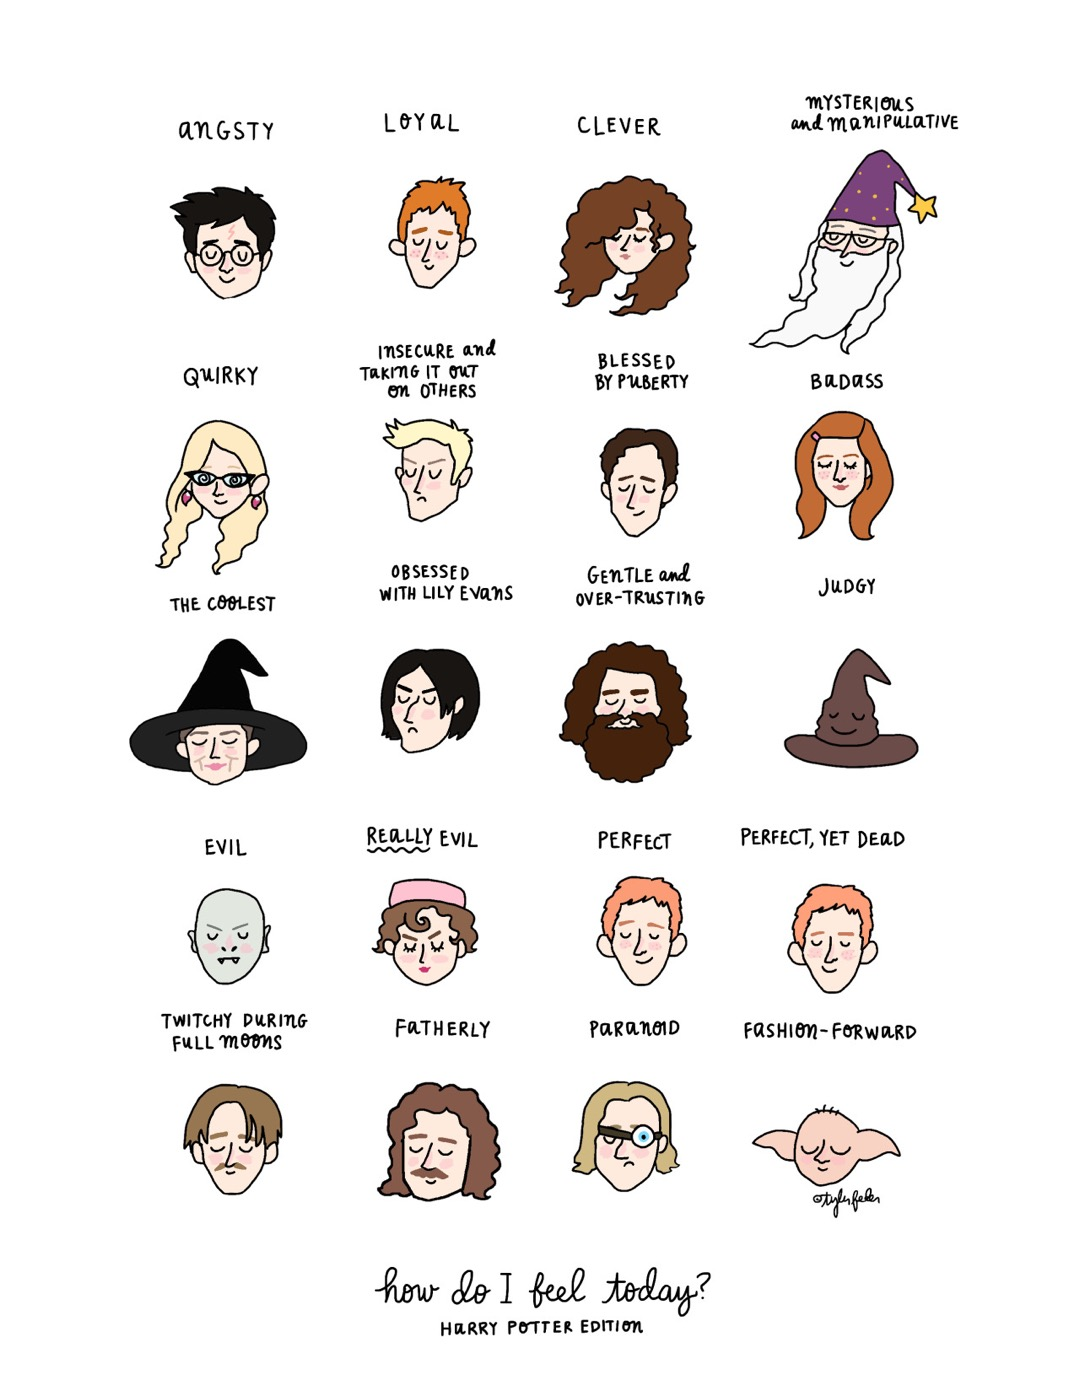 #HarryPotter mood chart